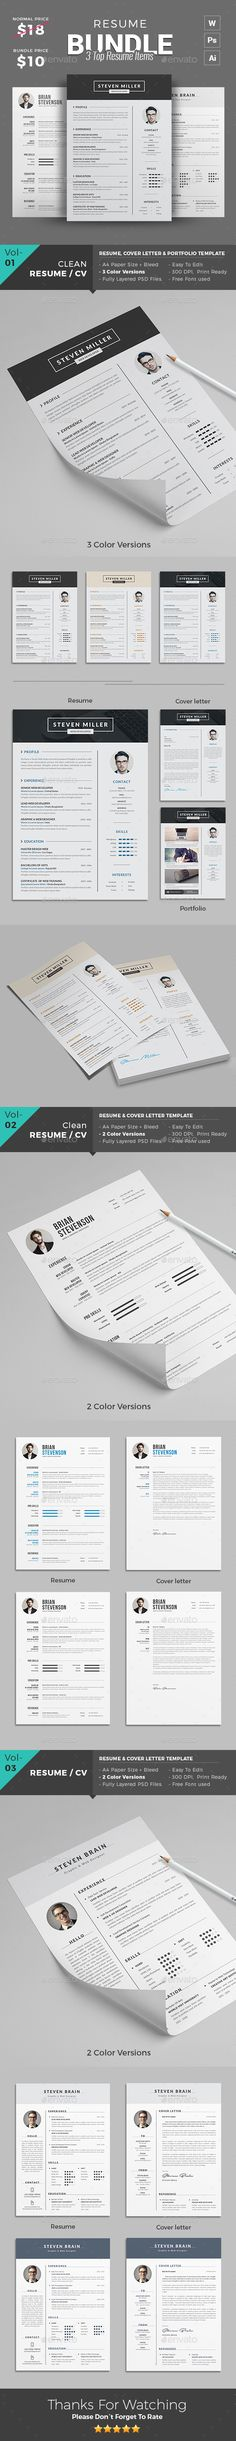 Dj and Musician Dark Press Kit \/ Resume Template Press kits - dj resume